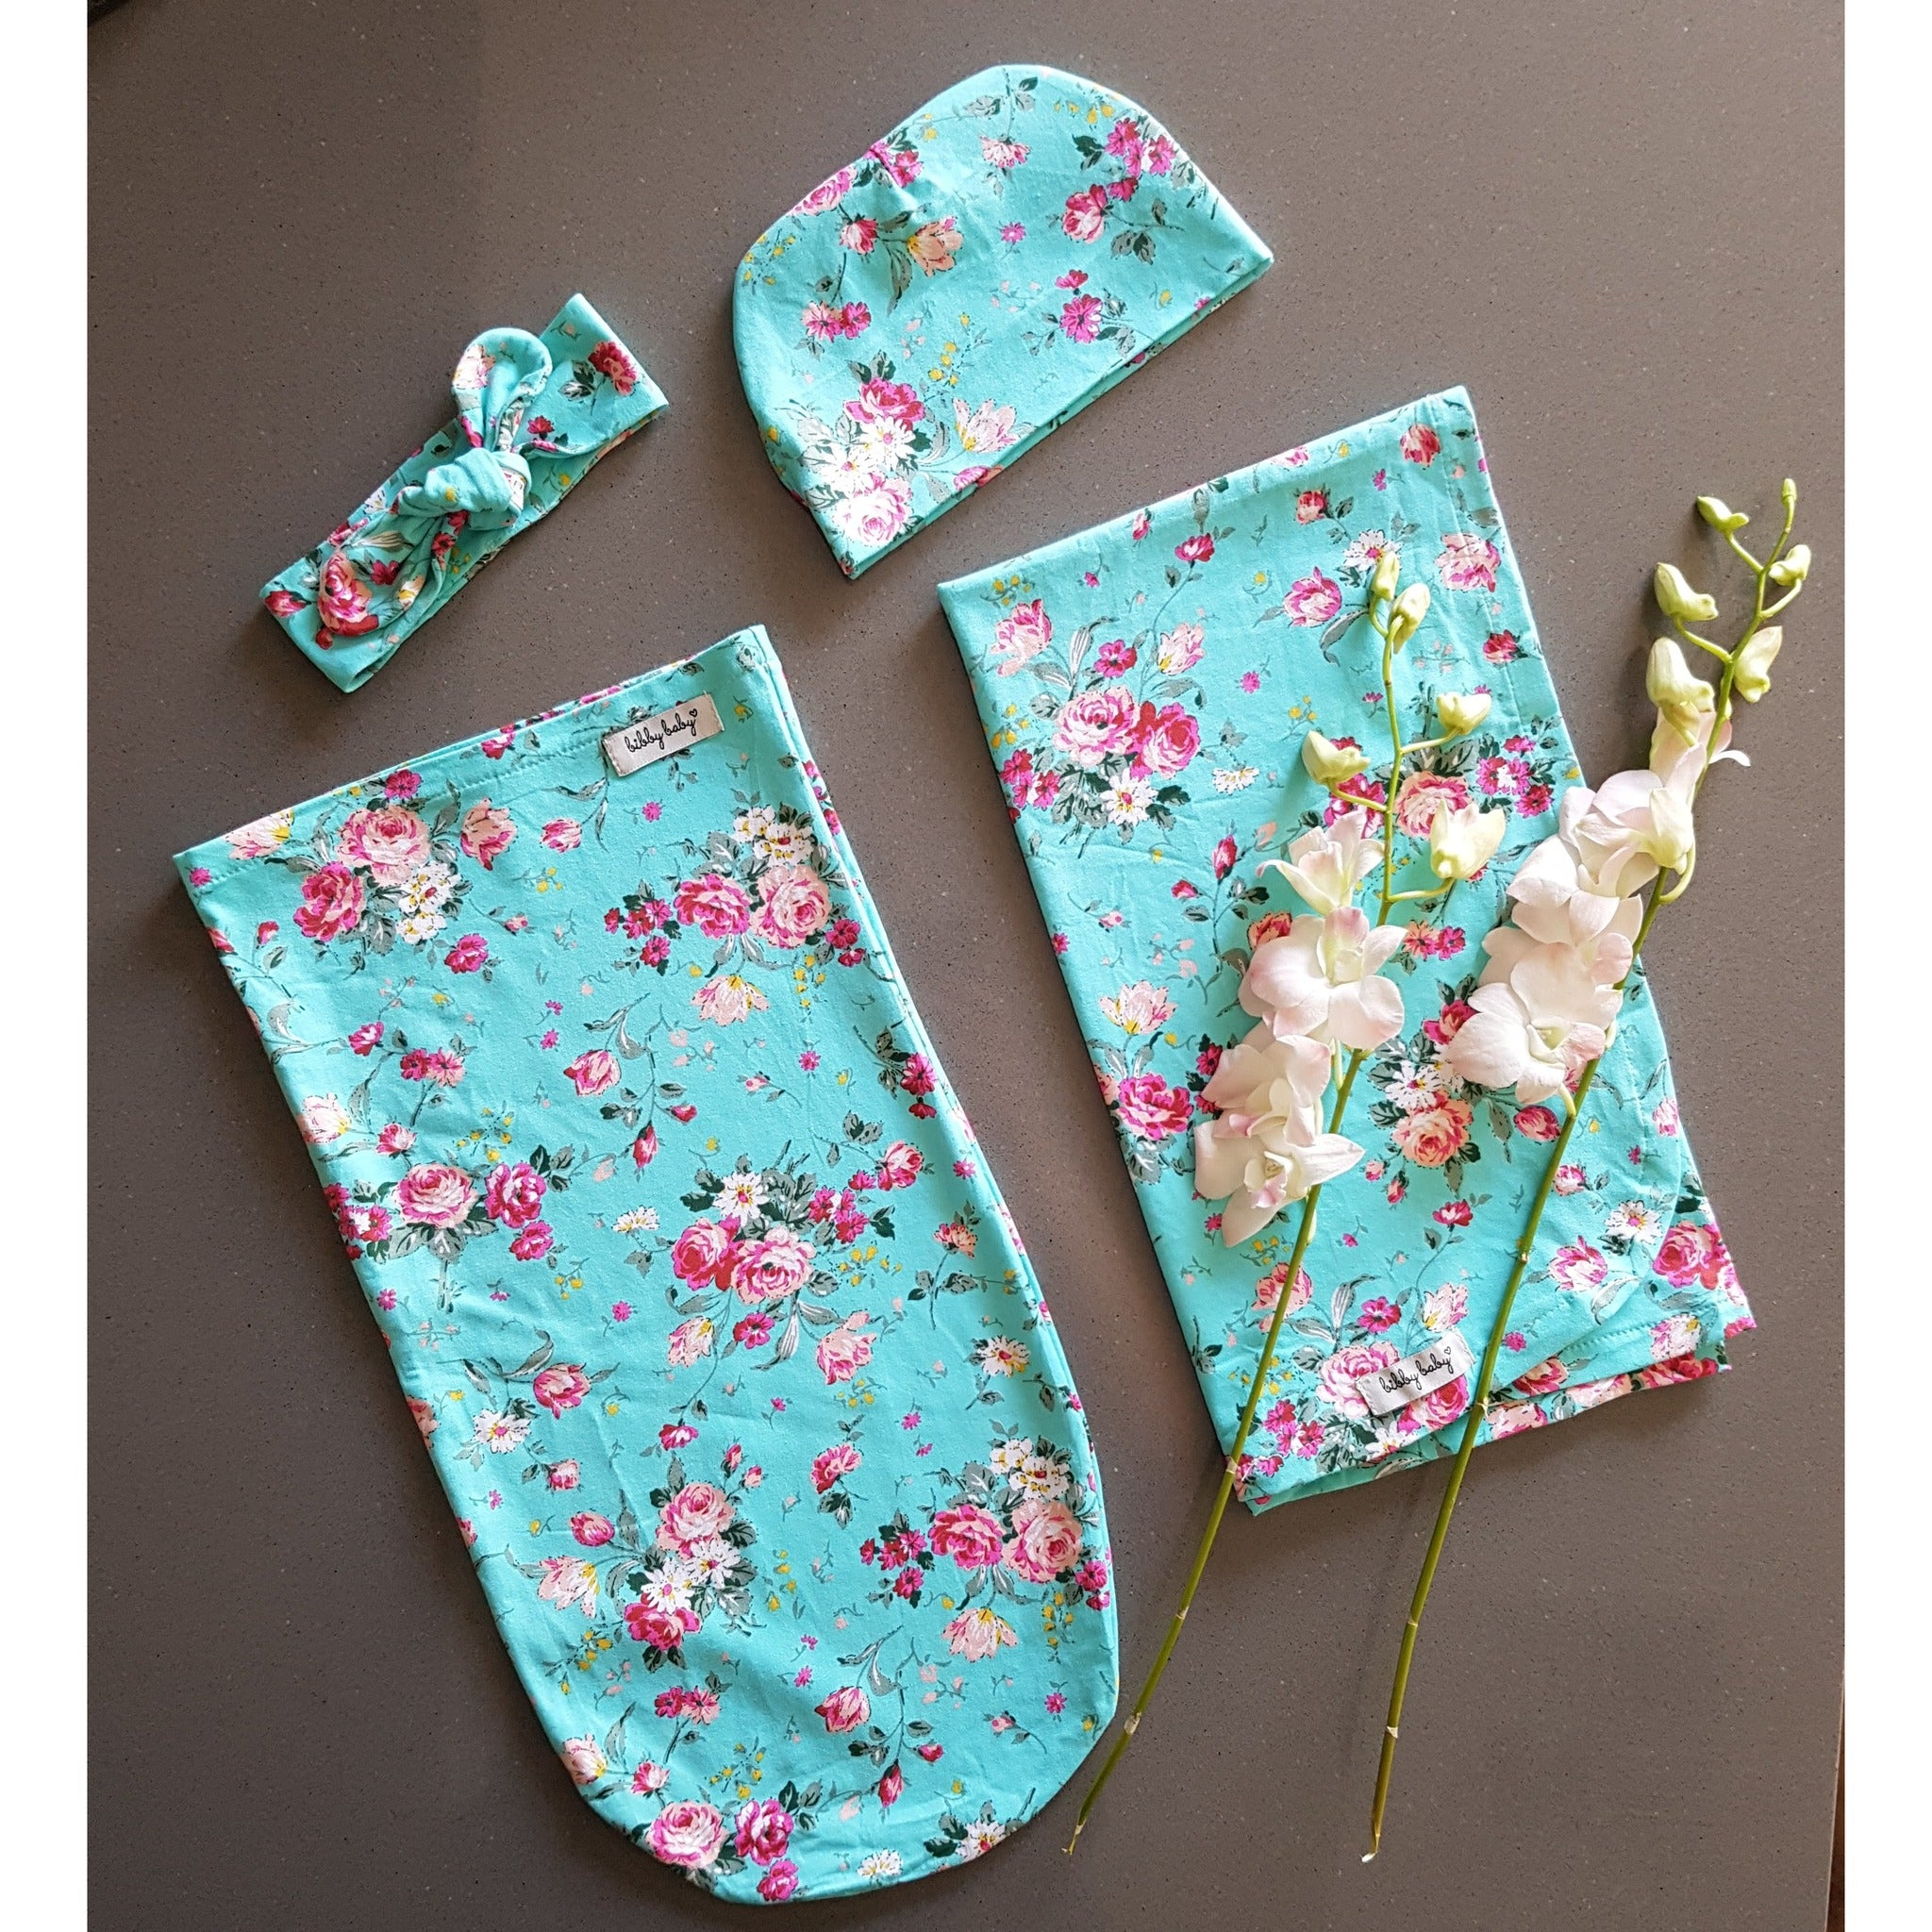 Baby Bundle I Swaddle Sack with matching Beanie, Topknot & Wrap - Mint Floral